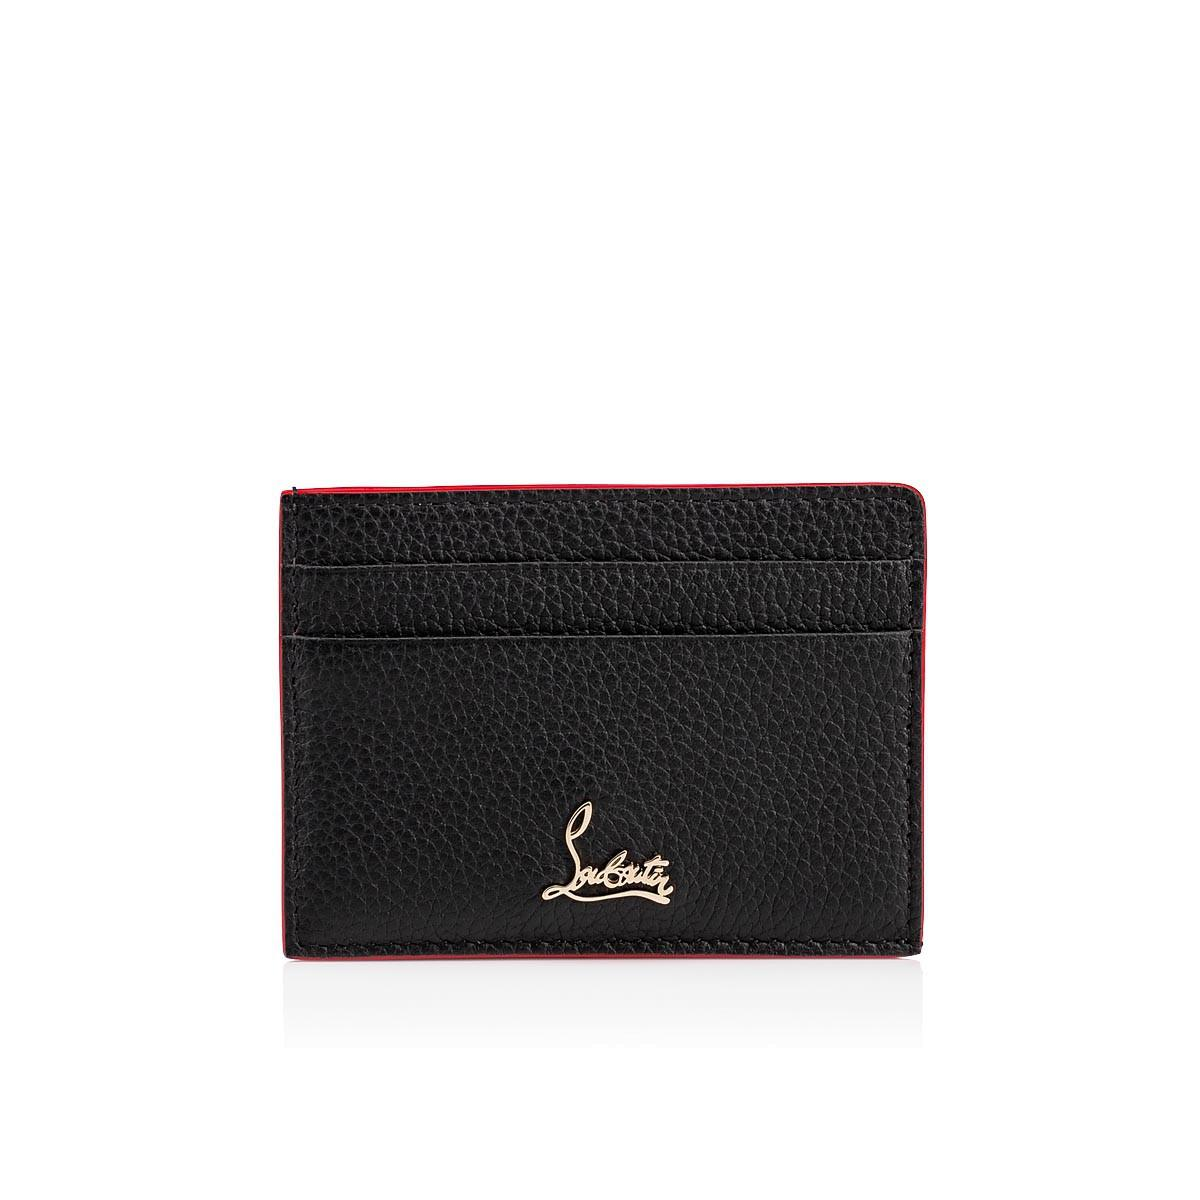 7de096e25d0 Kios Card Holder in Black